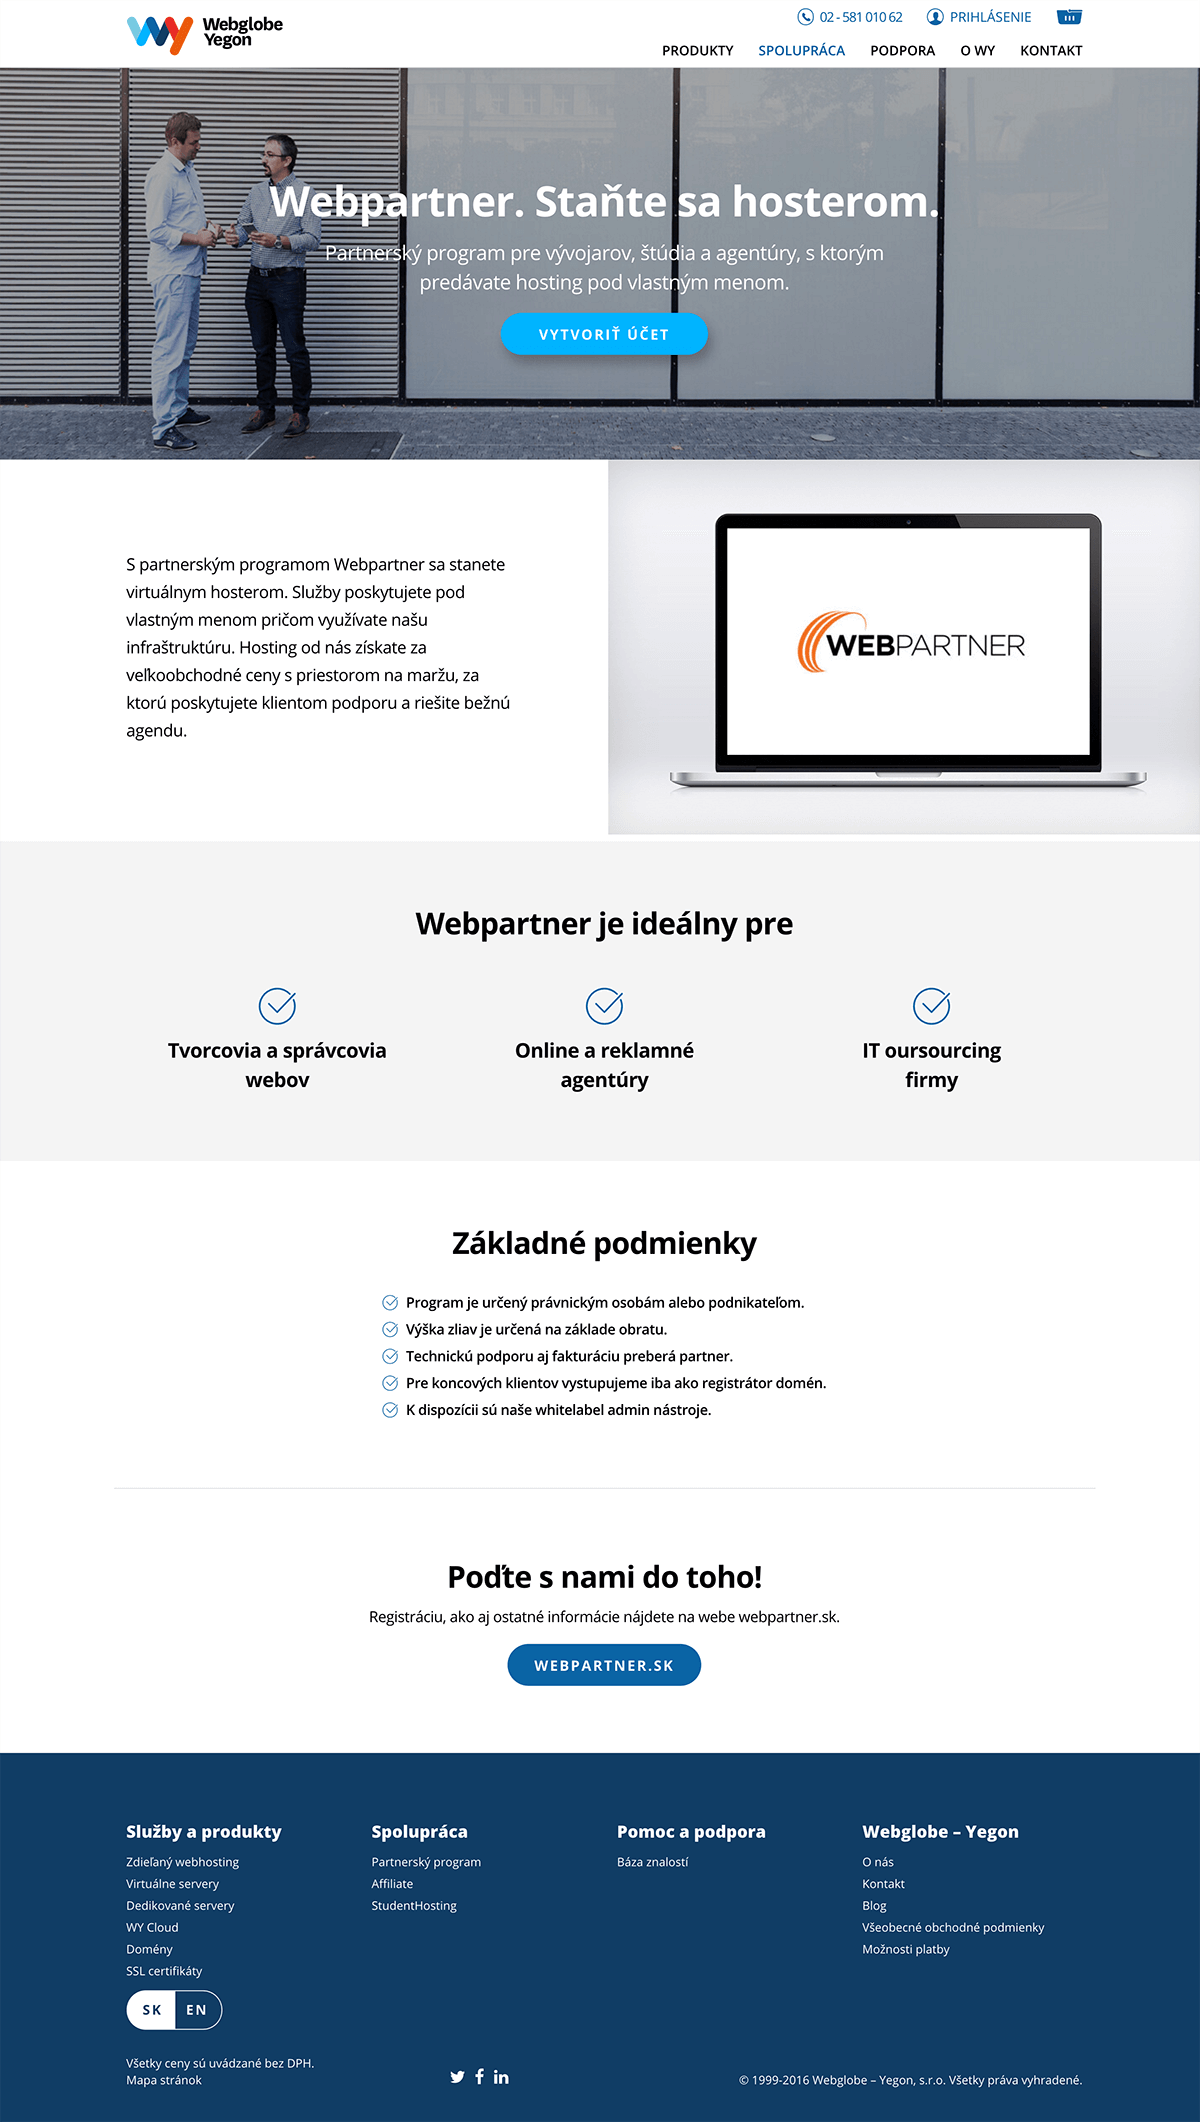 partnersky-program-webpartner-wy